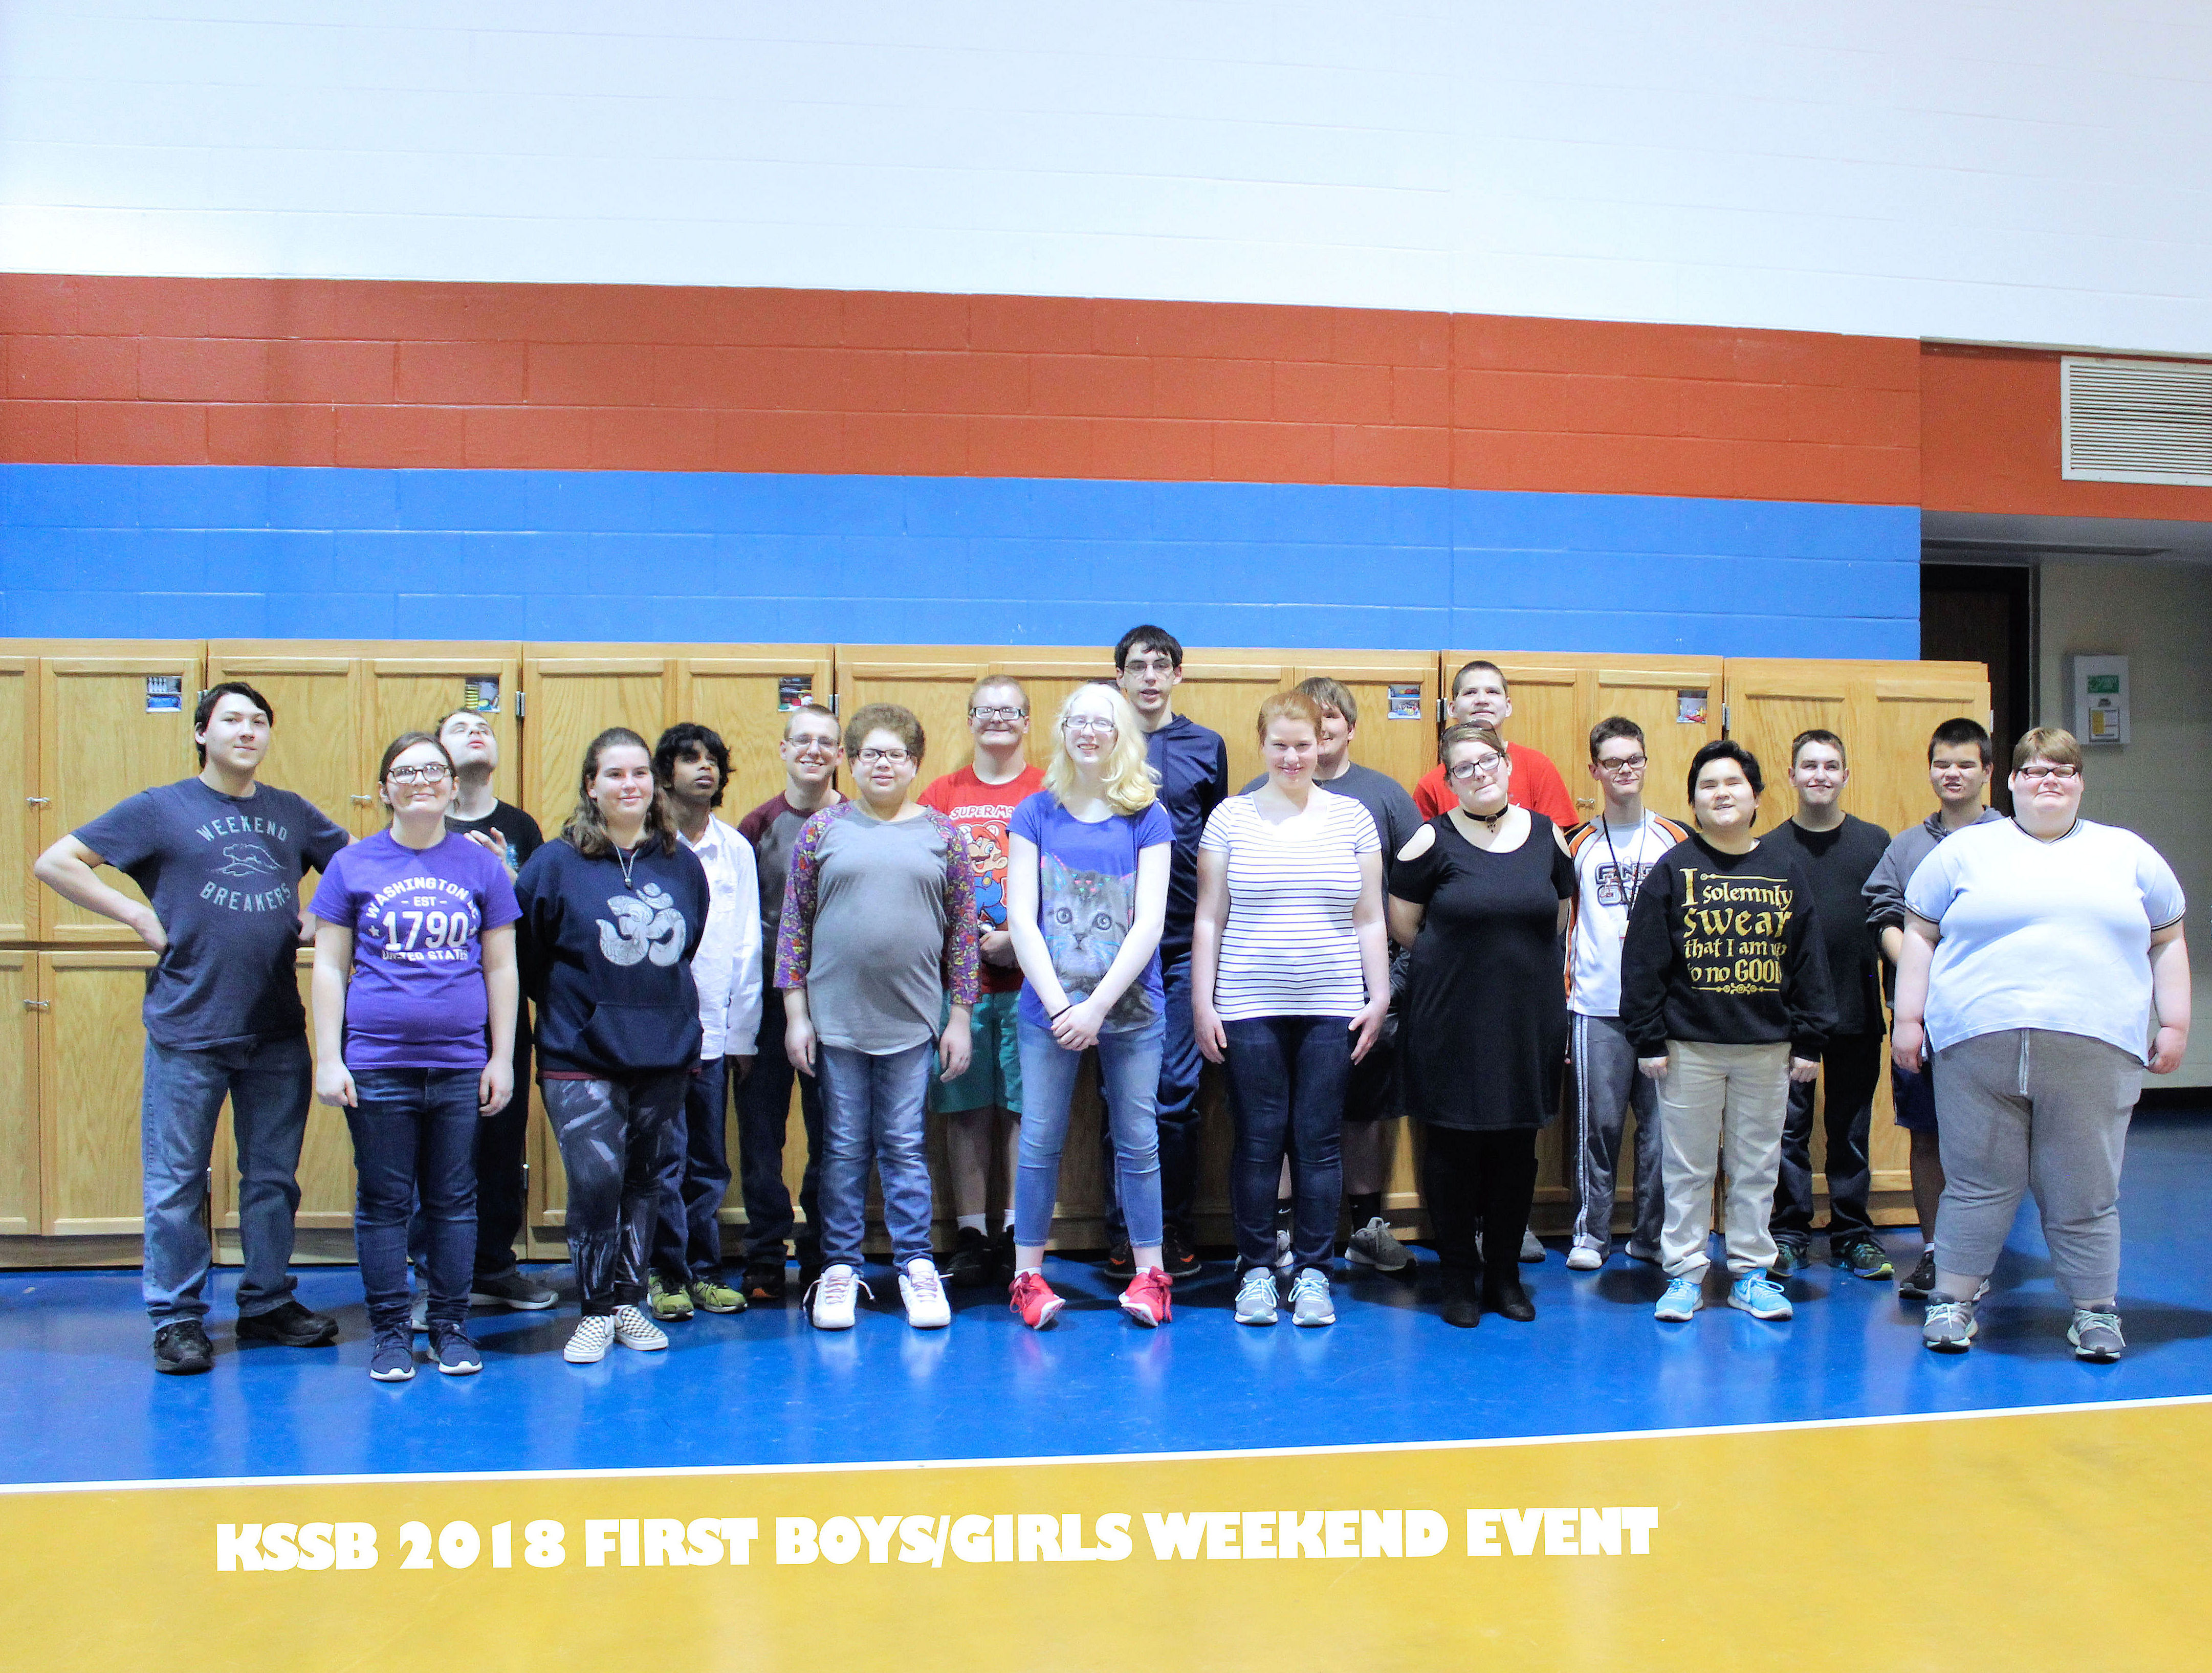 Group photo of 19 Boys and Girls Weekend at KSSB 2018 first annual Boys and Girls Event.